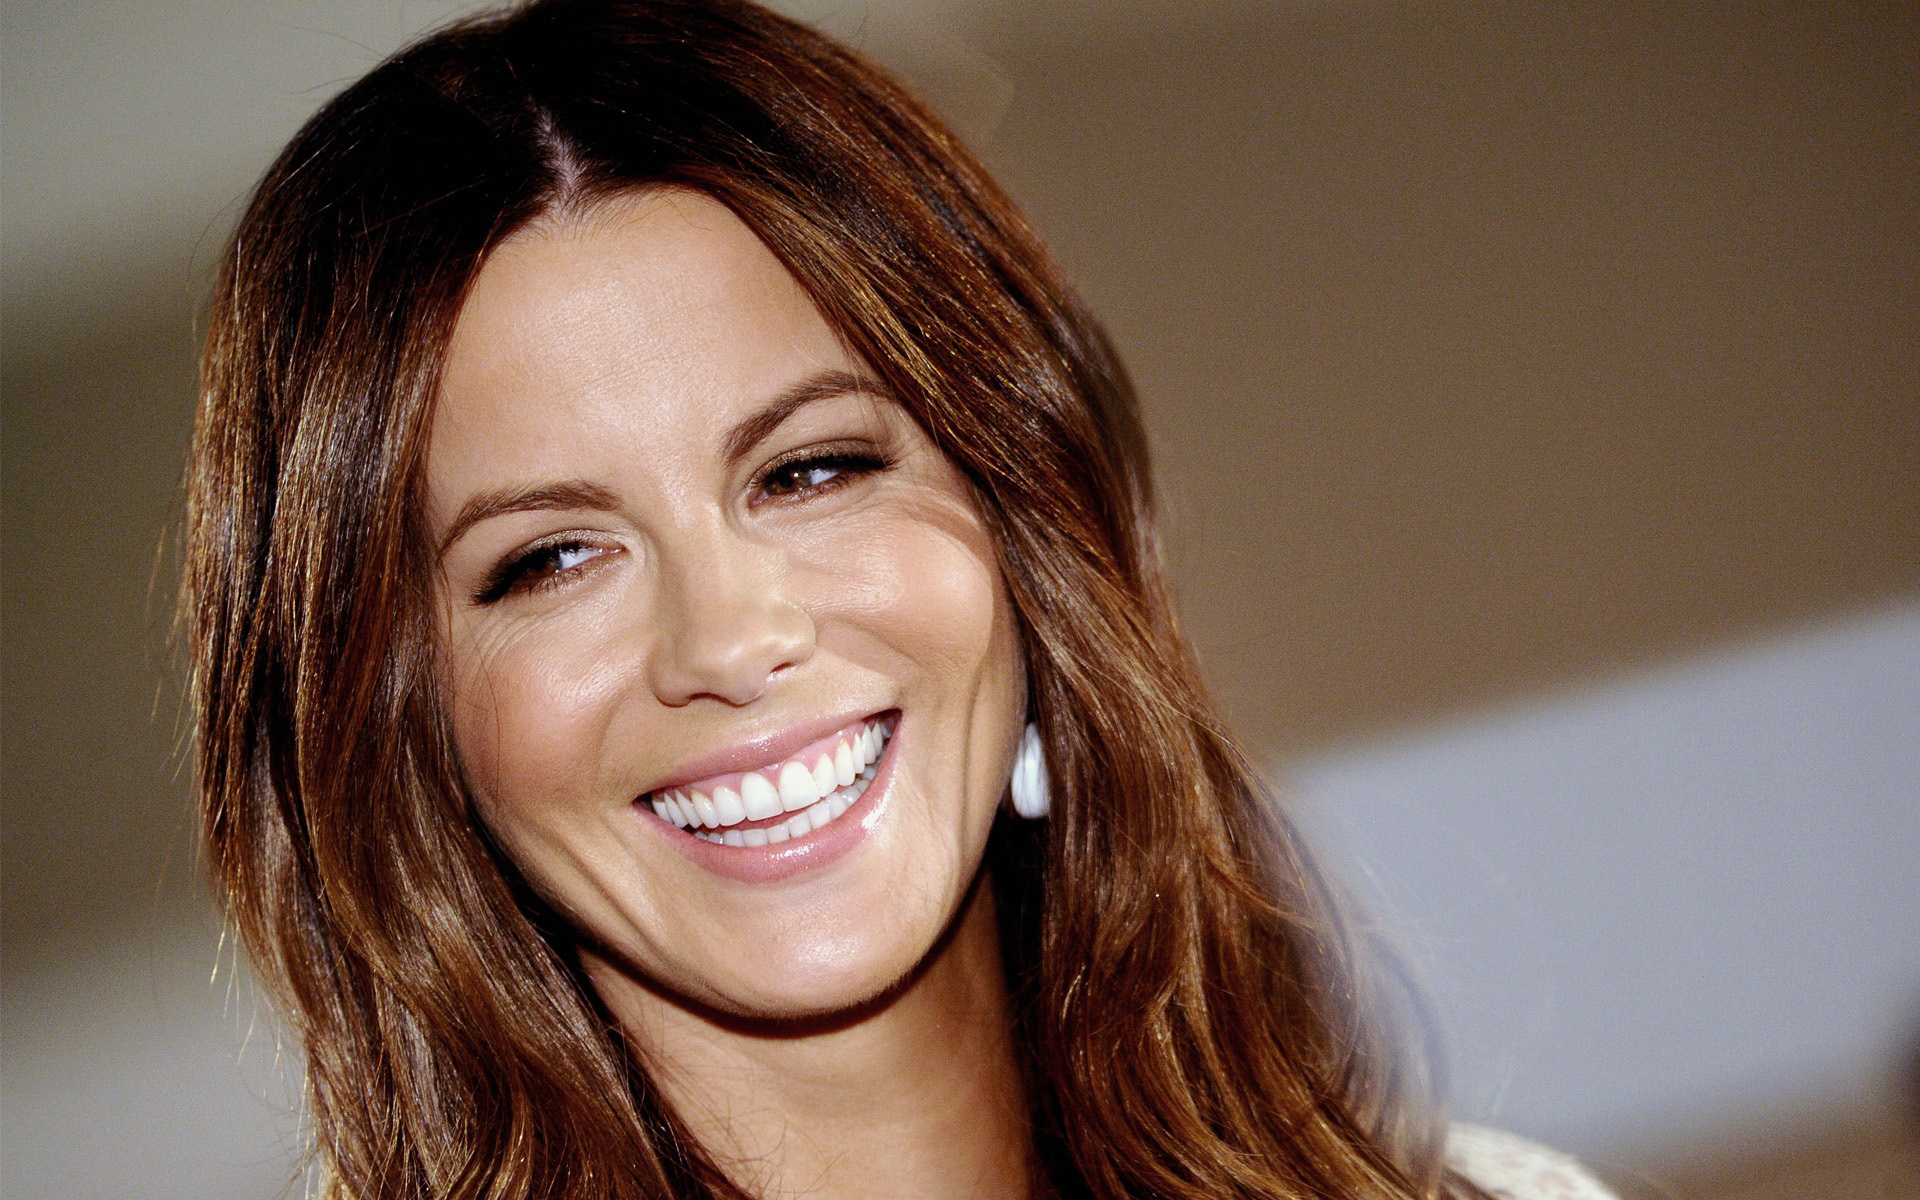 Kate Beckinsale Laughing Images• PoPoPics.com Kate Beckinsale